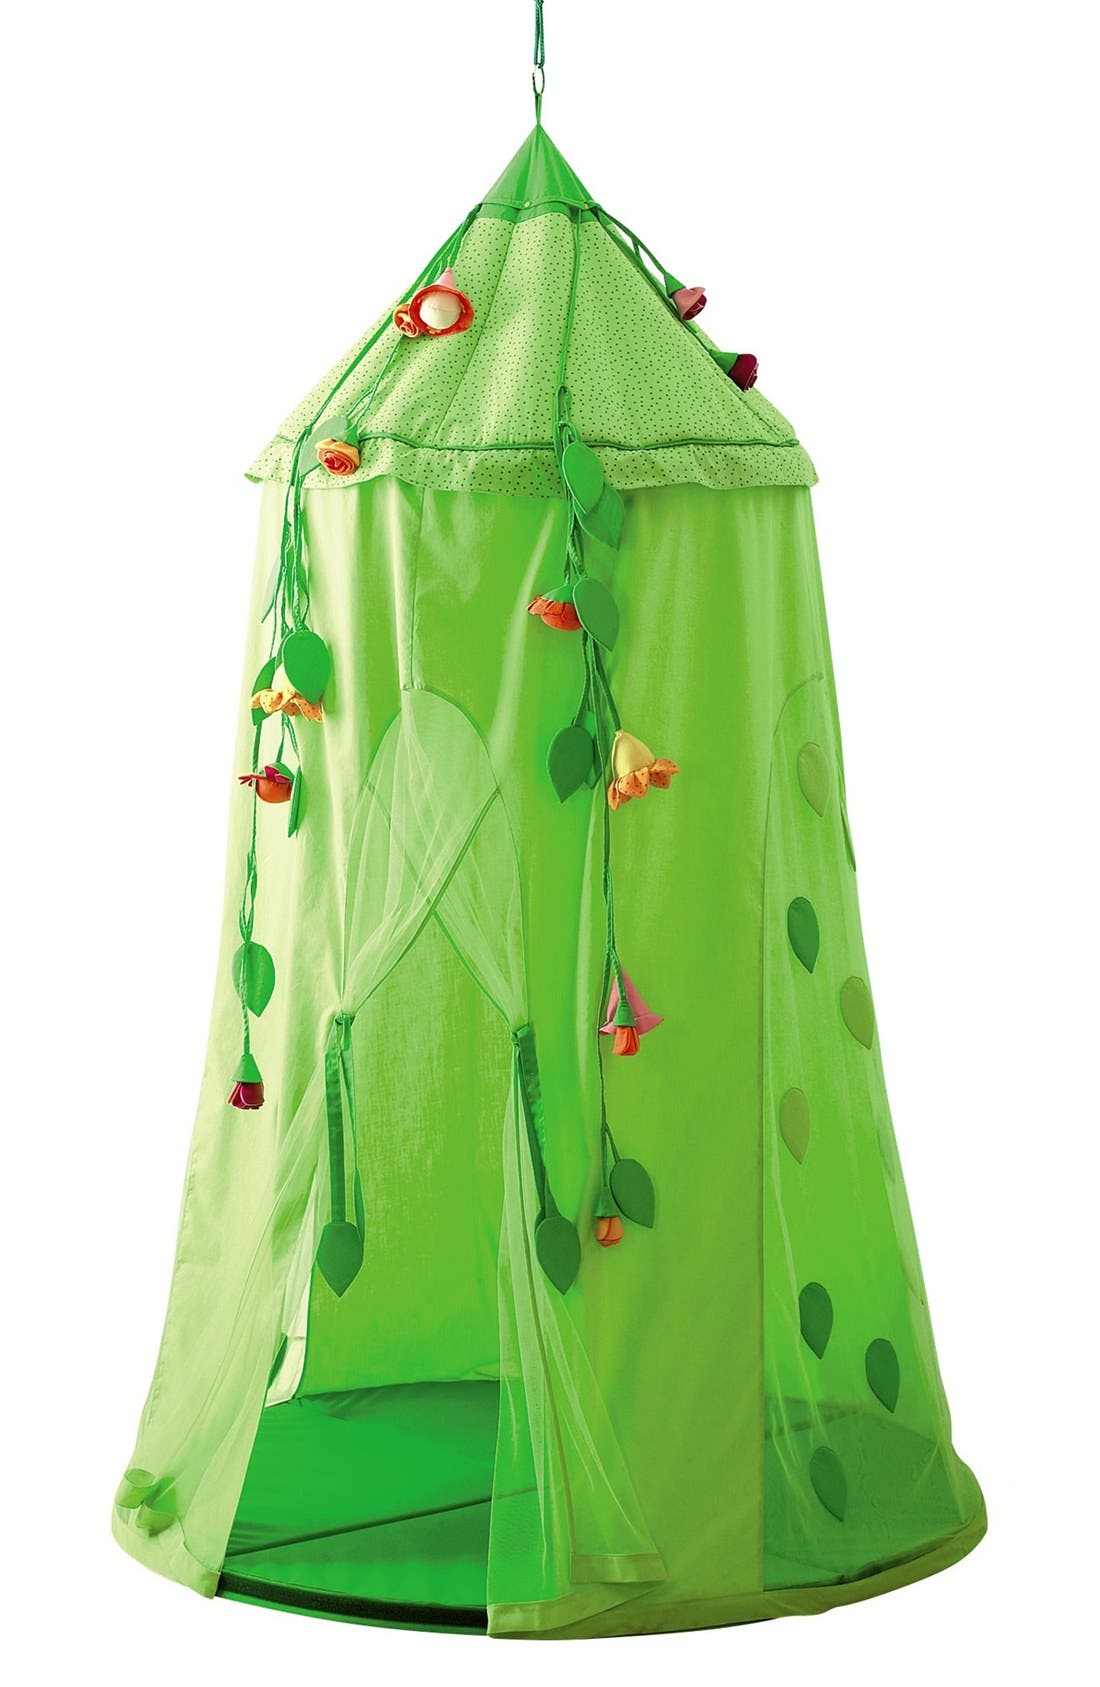 HABA 'Blossom Sky' Hanging Play Tent